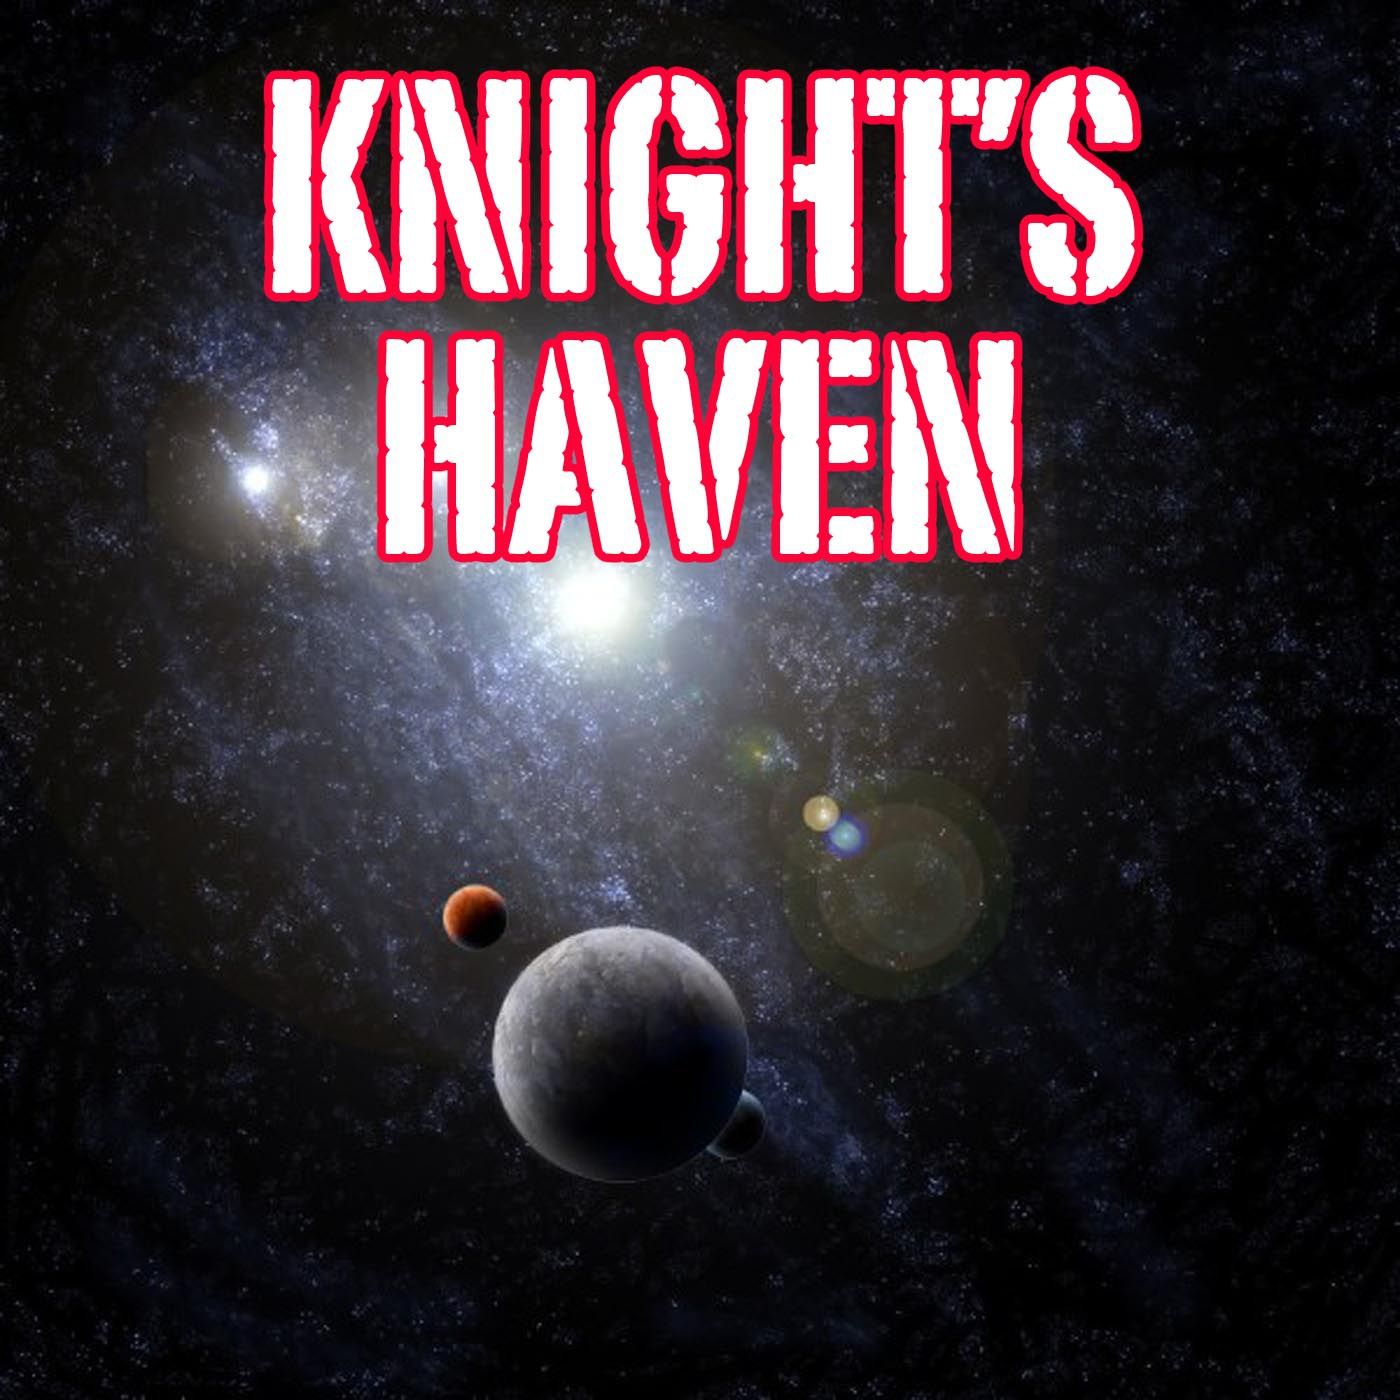 Knight's Haven